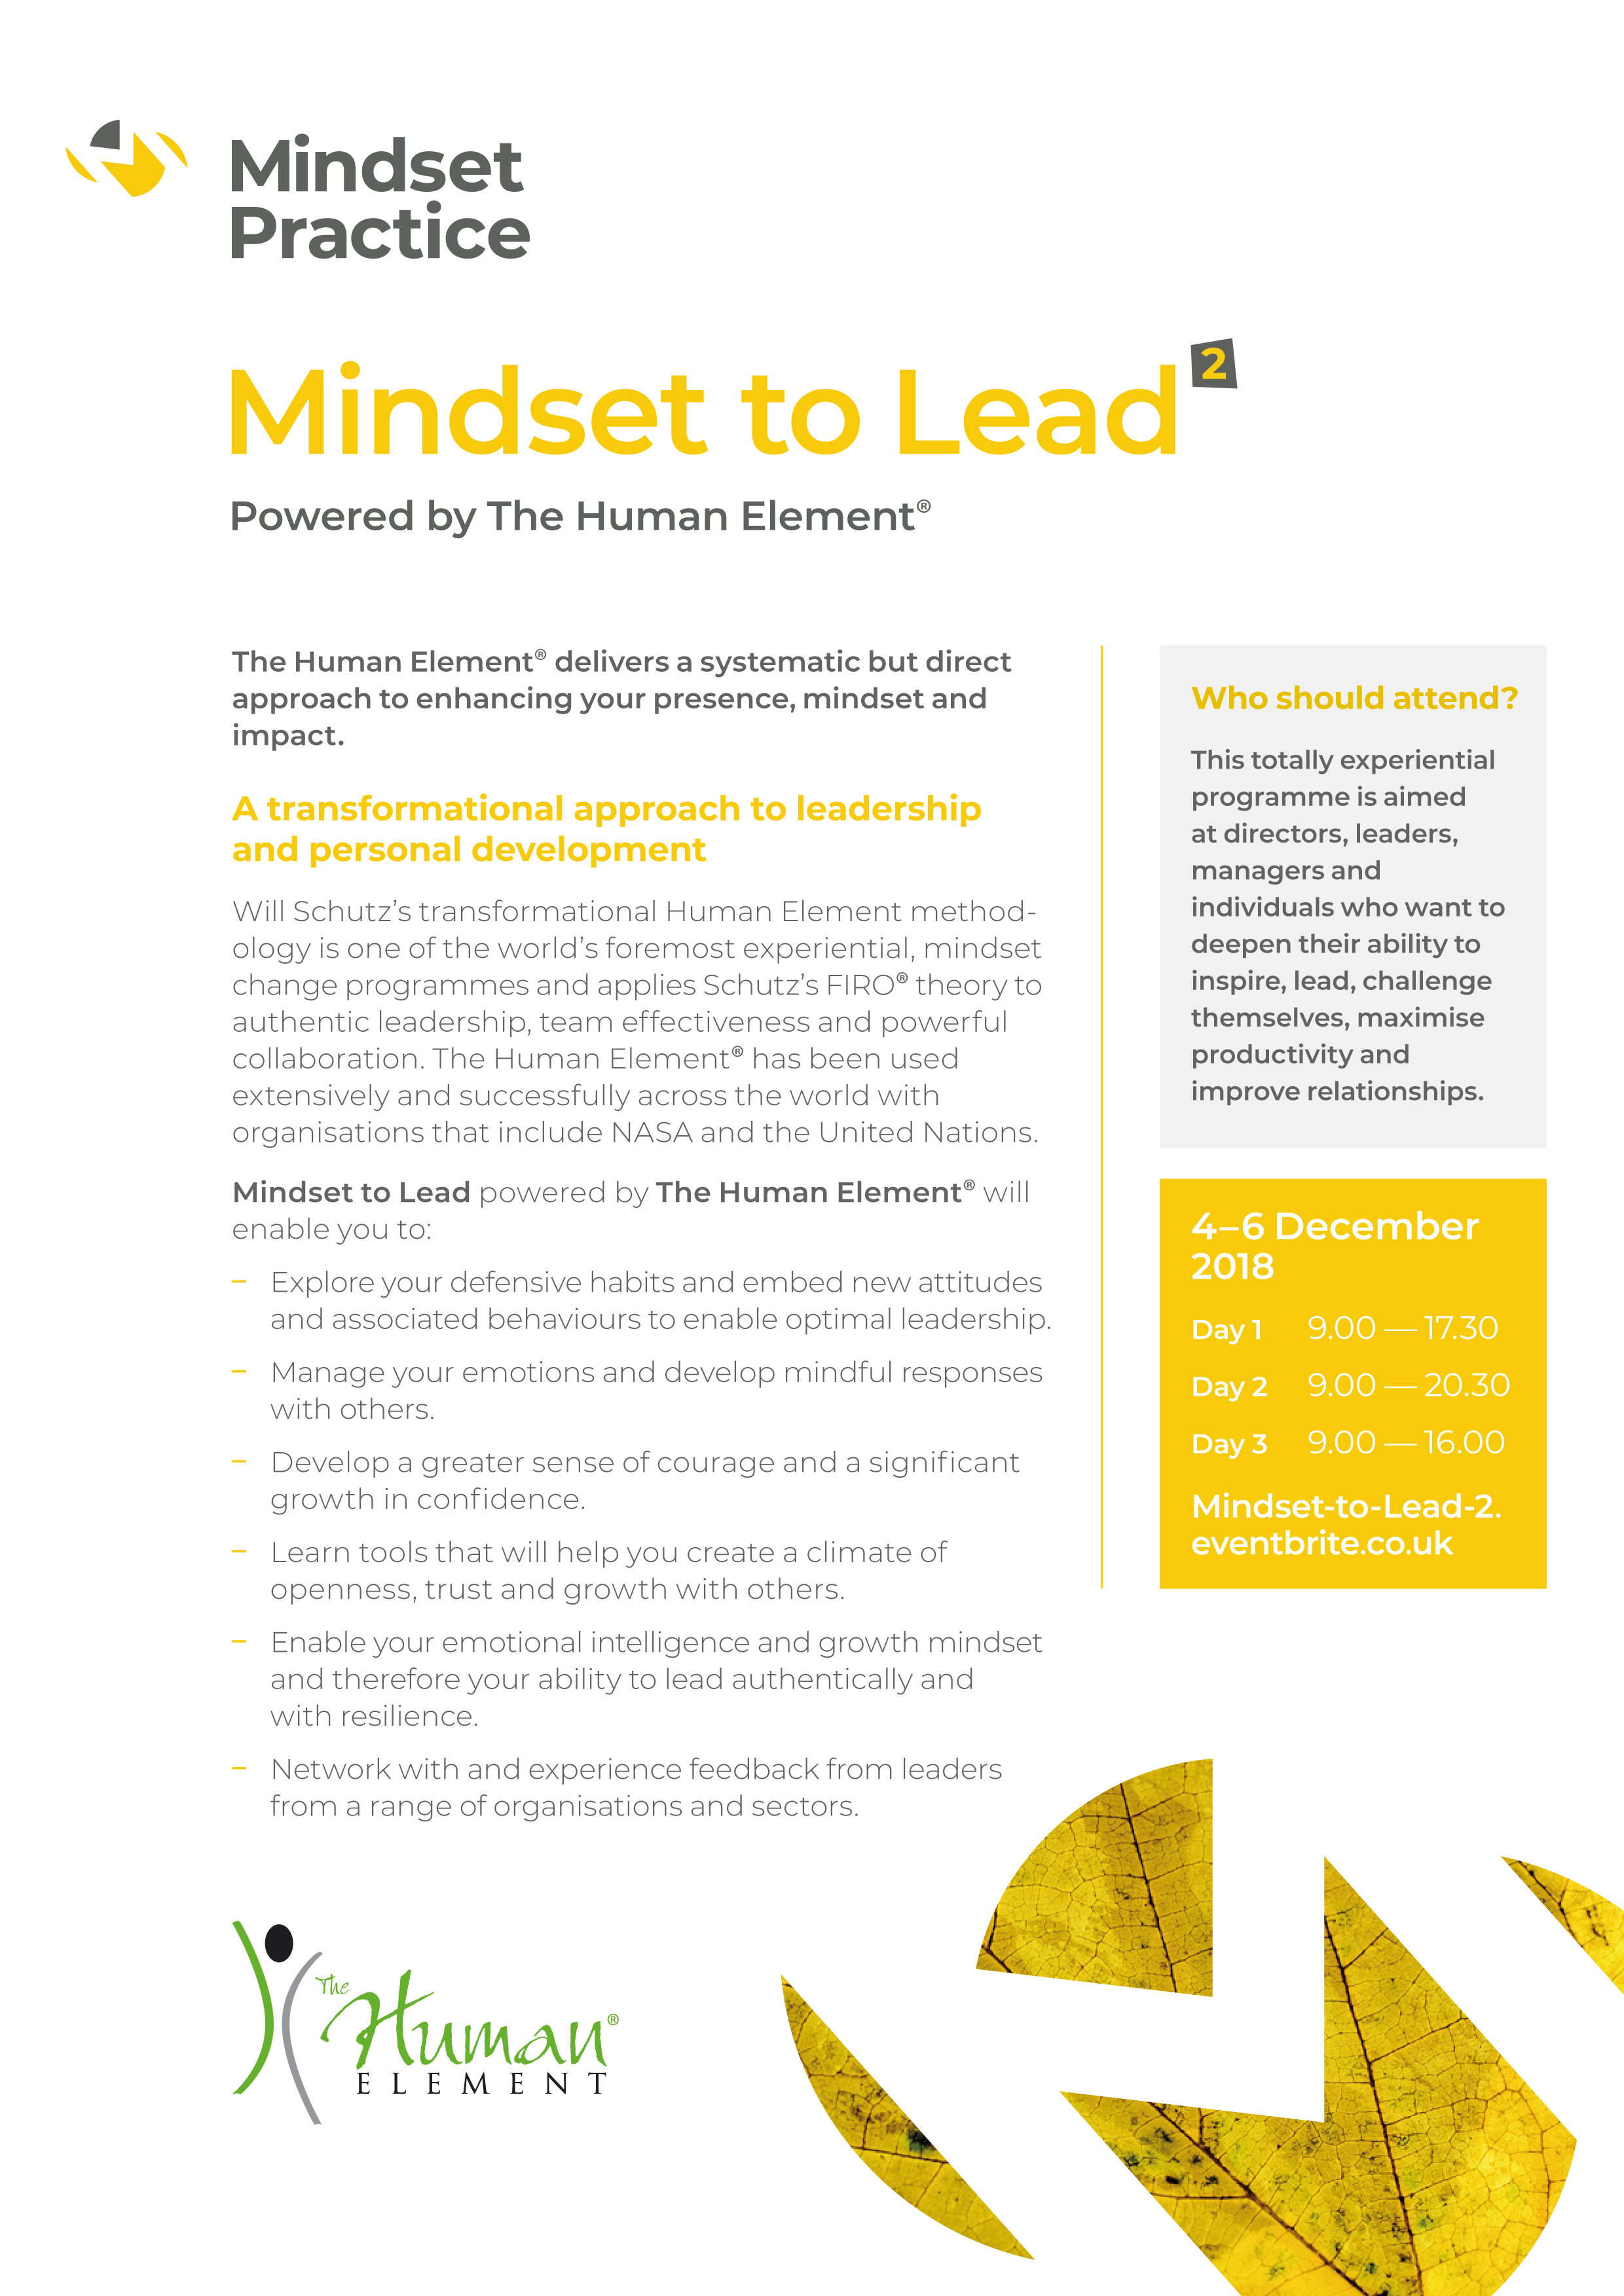 Mindset-to-Lead-2-flyer-page-1